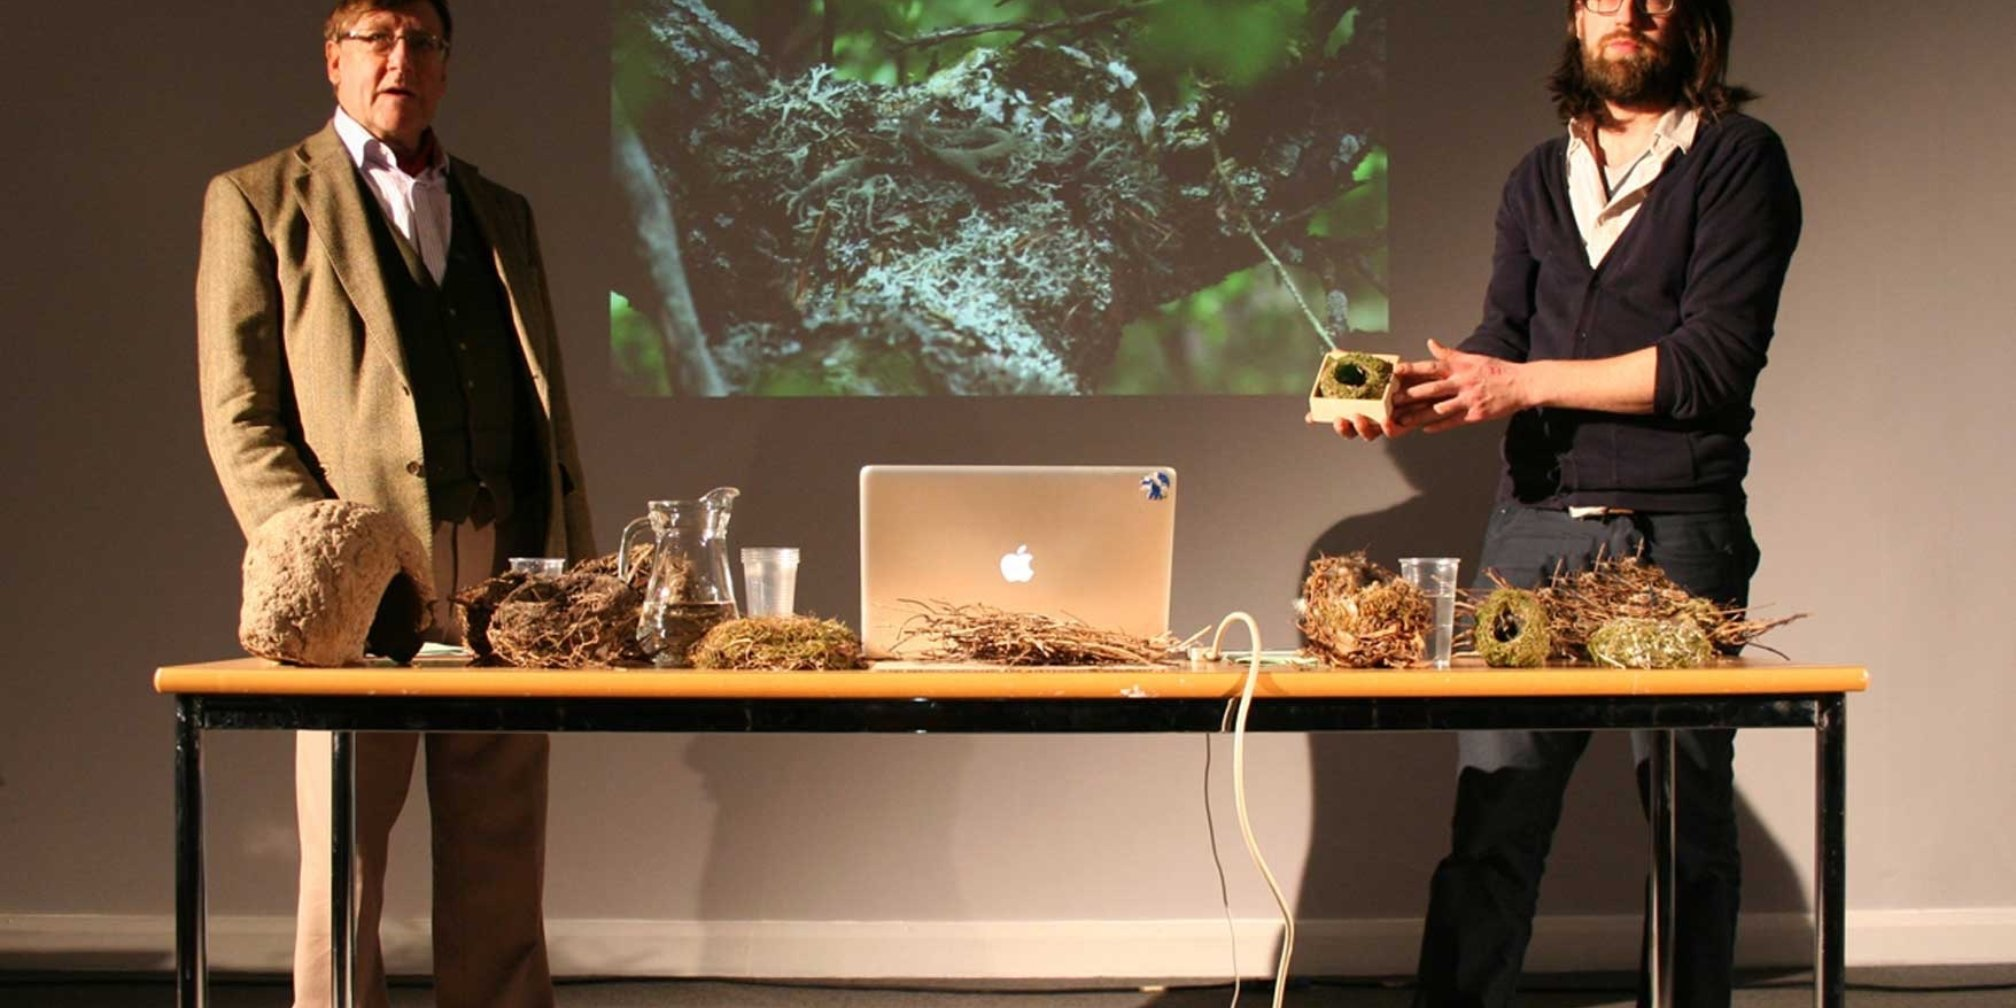 Andy Holden and Peter Holden, PERFORMA13, Lecture on Nesting, Collective Gallery Show 2012 Central Library Edinburgh,